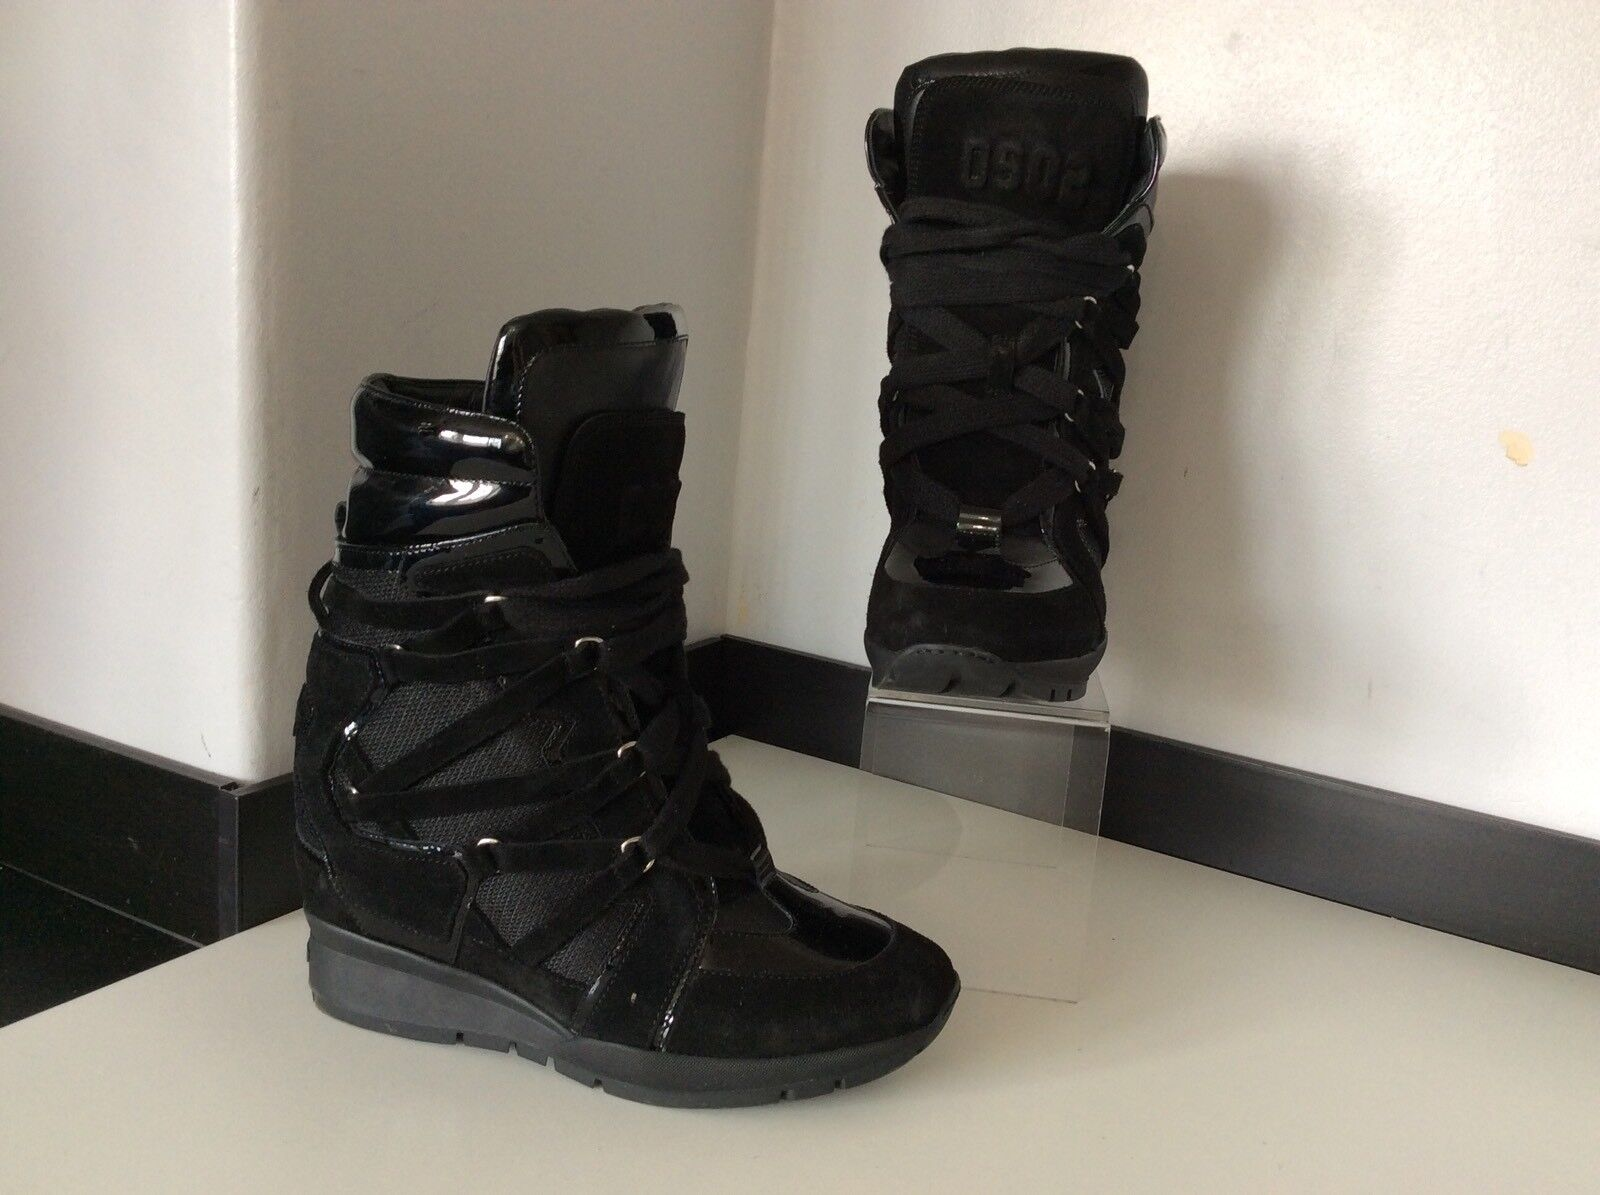 Dsquared2 Ds2 Lanseaza Wedge Sneakers, Uk 7 Eu40, Black, Boots, Immaculate